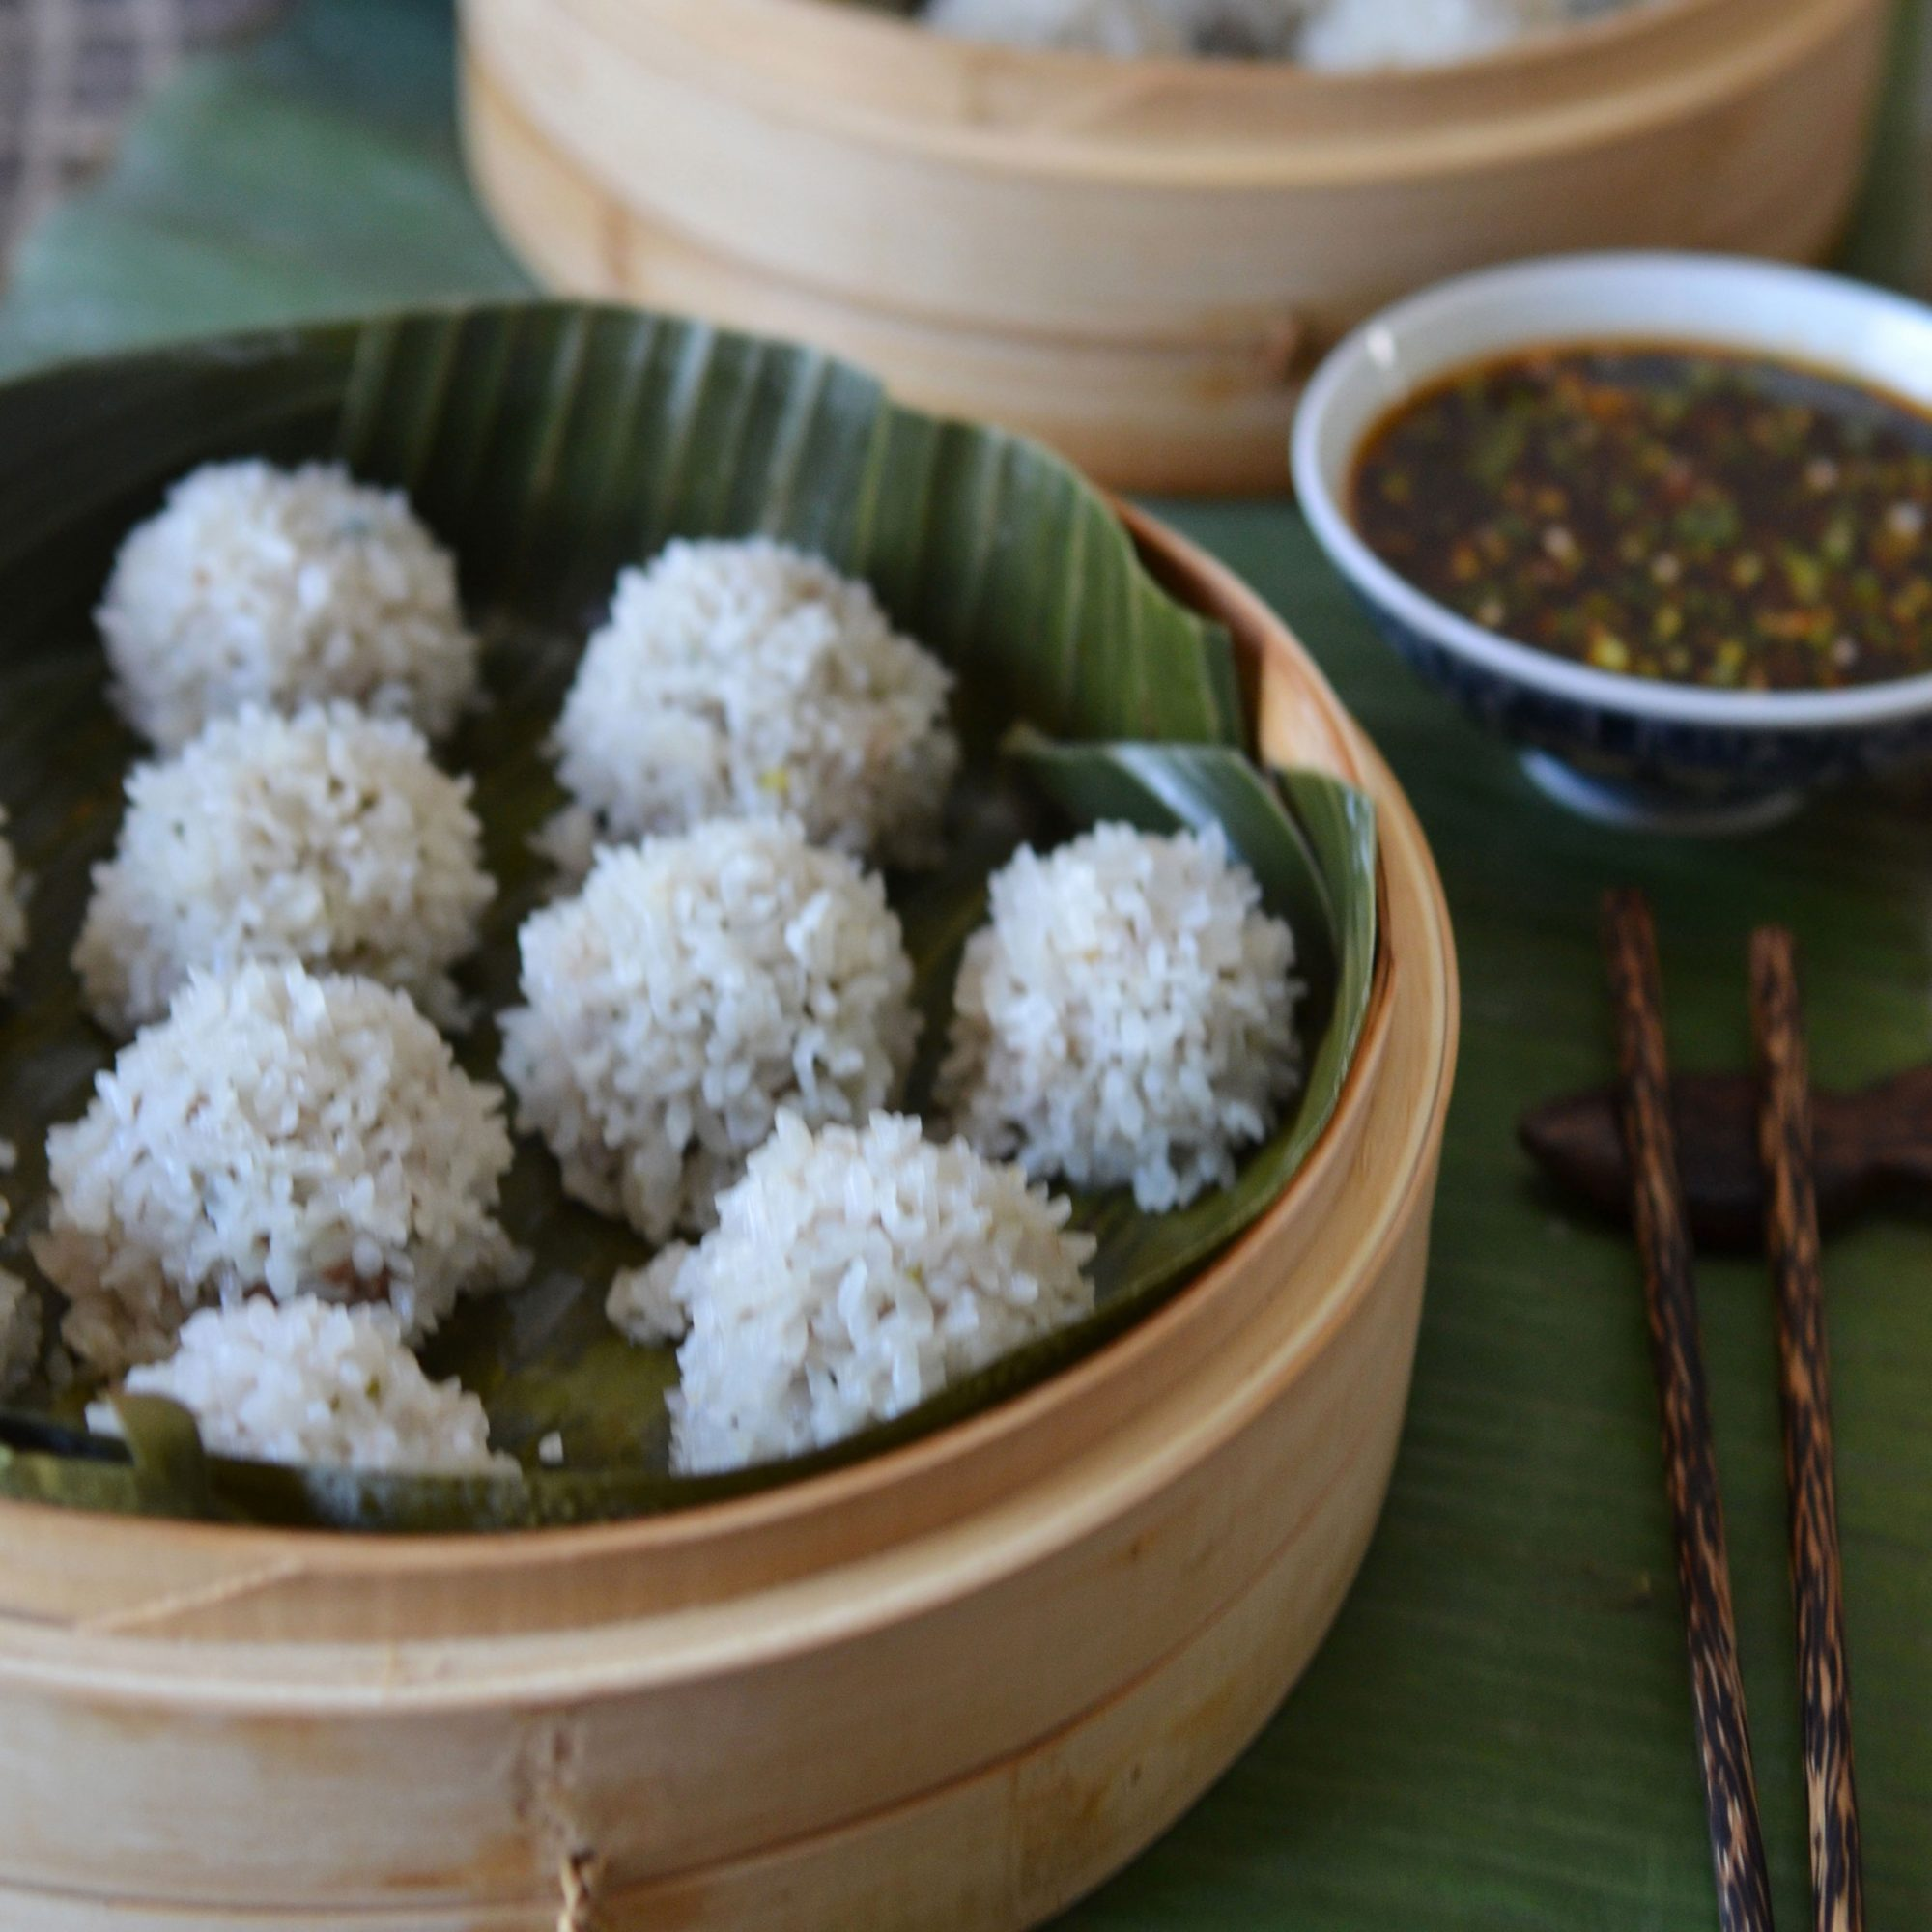 Andrew Zimmern's Pearl Rice Balls with Ginger-Sesame Sauce